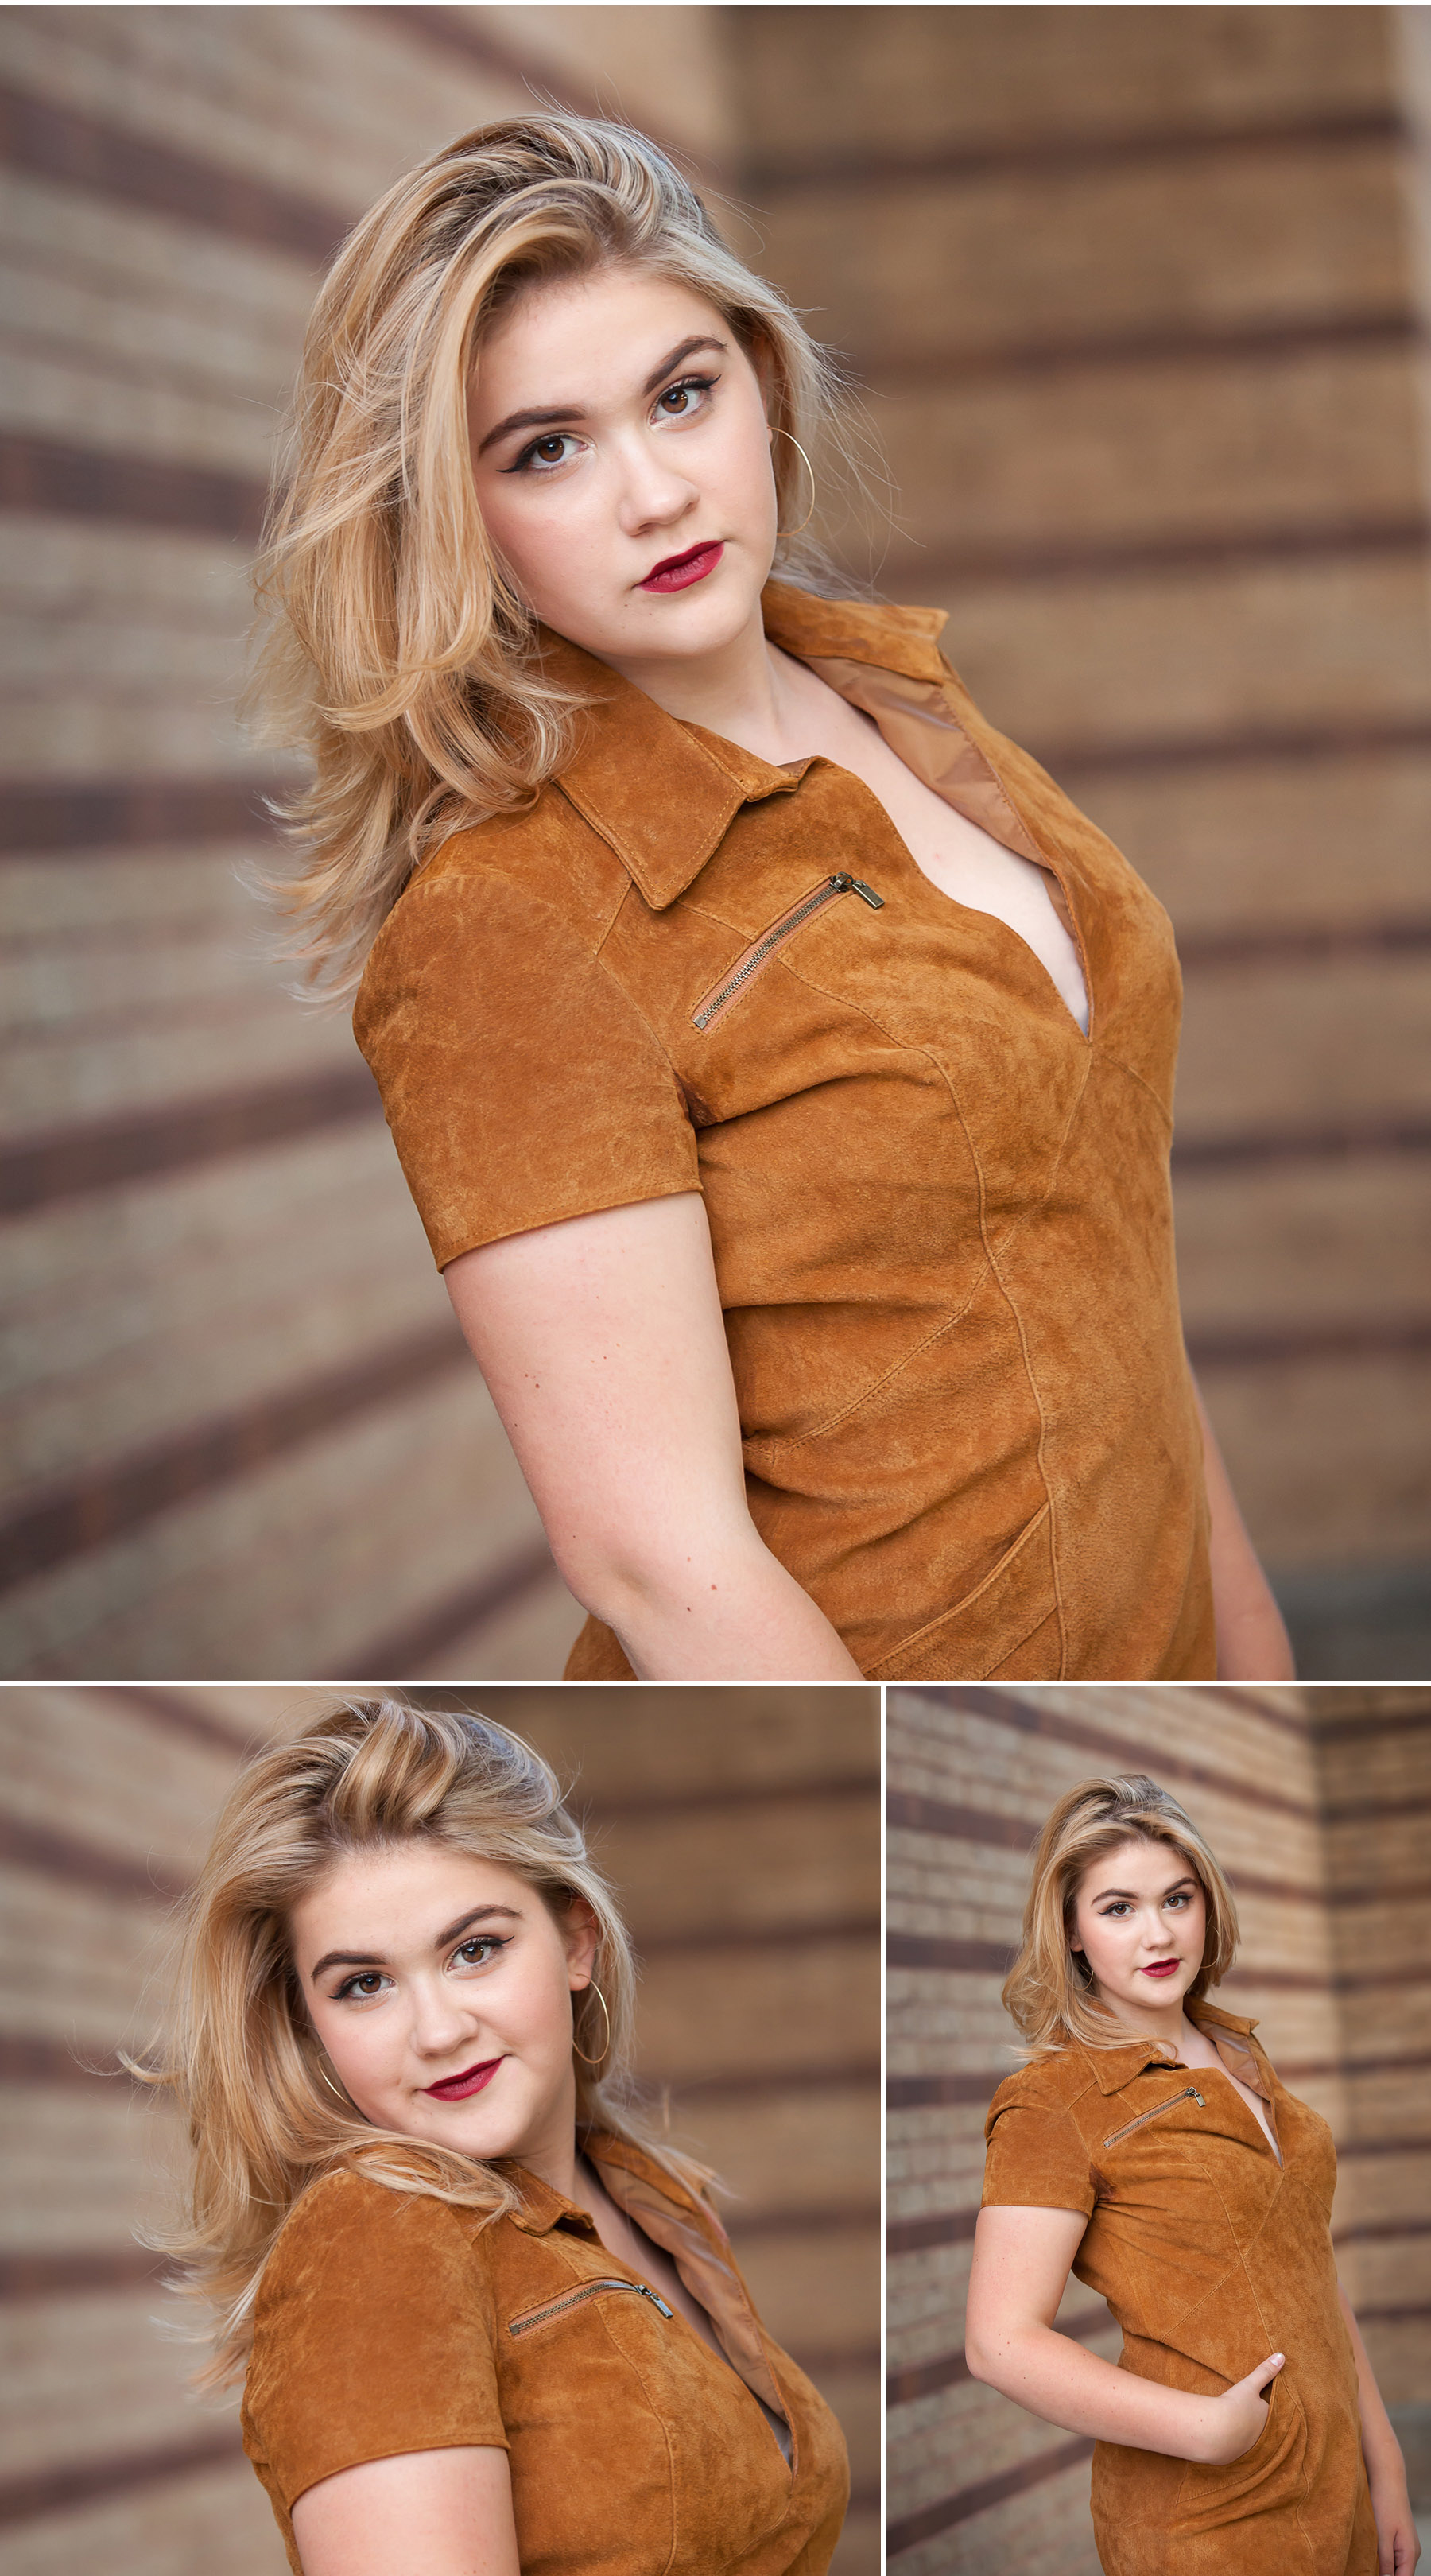 Senior Portraits in brown suede dress against cool brick wall with Denver photographer Jennifer Koskinen, Merritt Portrait Studio